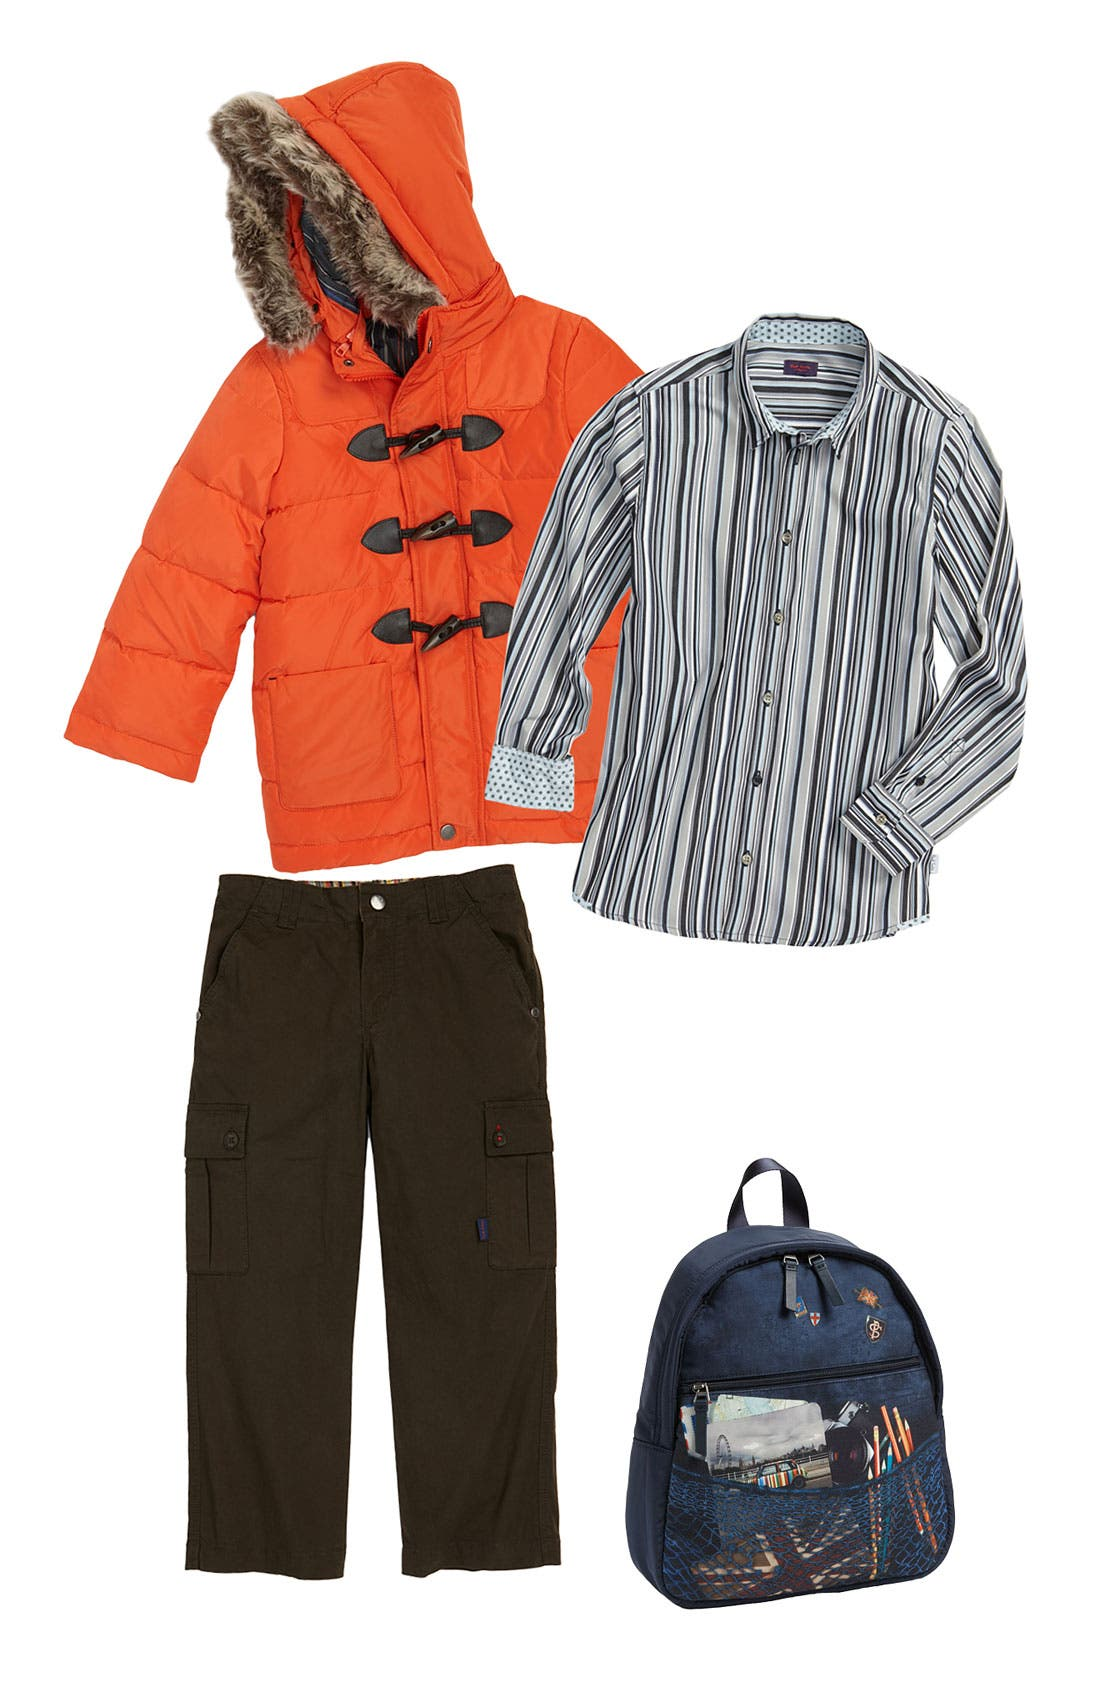 Alternate Image 1 Selected - Paul Smith Junior Jacket, Shirt & Pants (Little Boys)